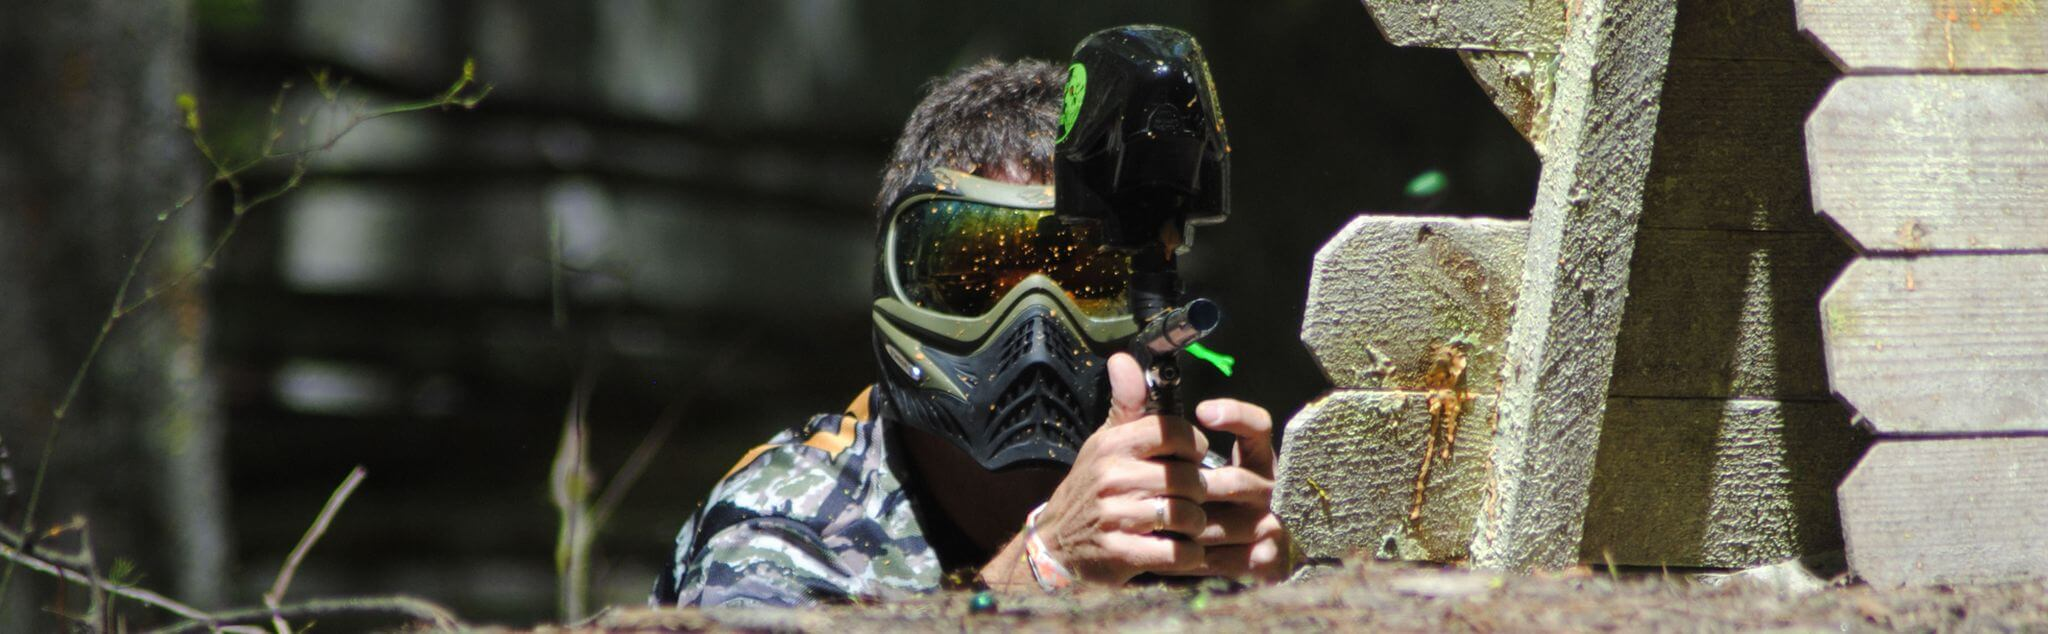 Paintball a Siracusa